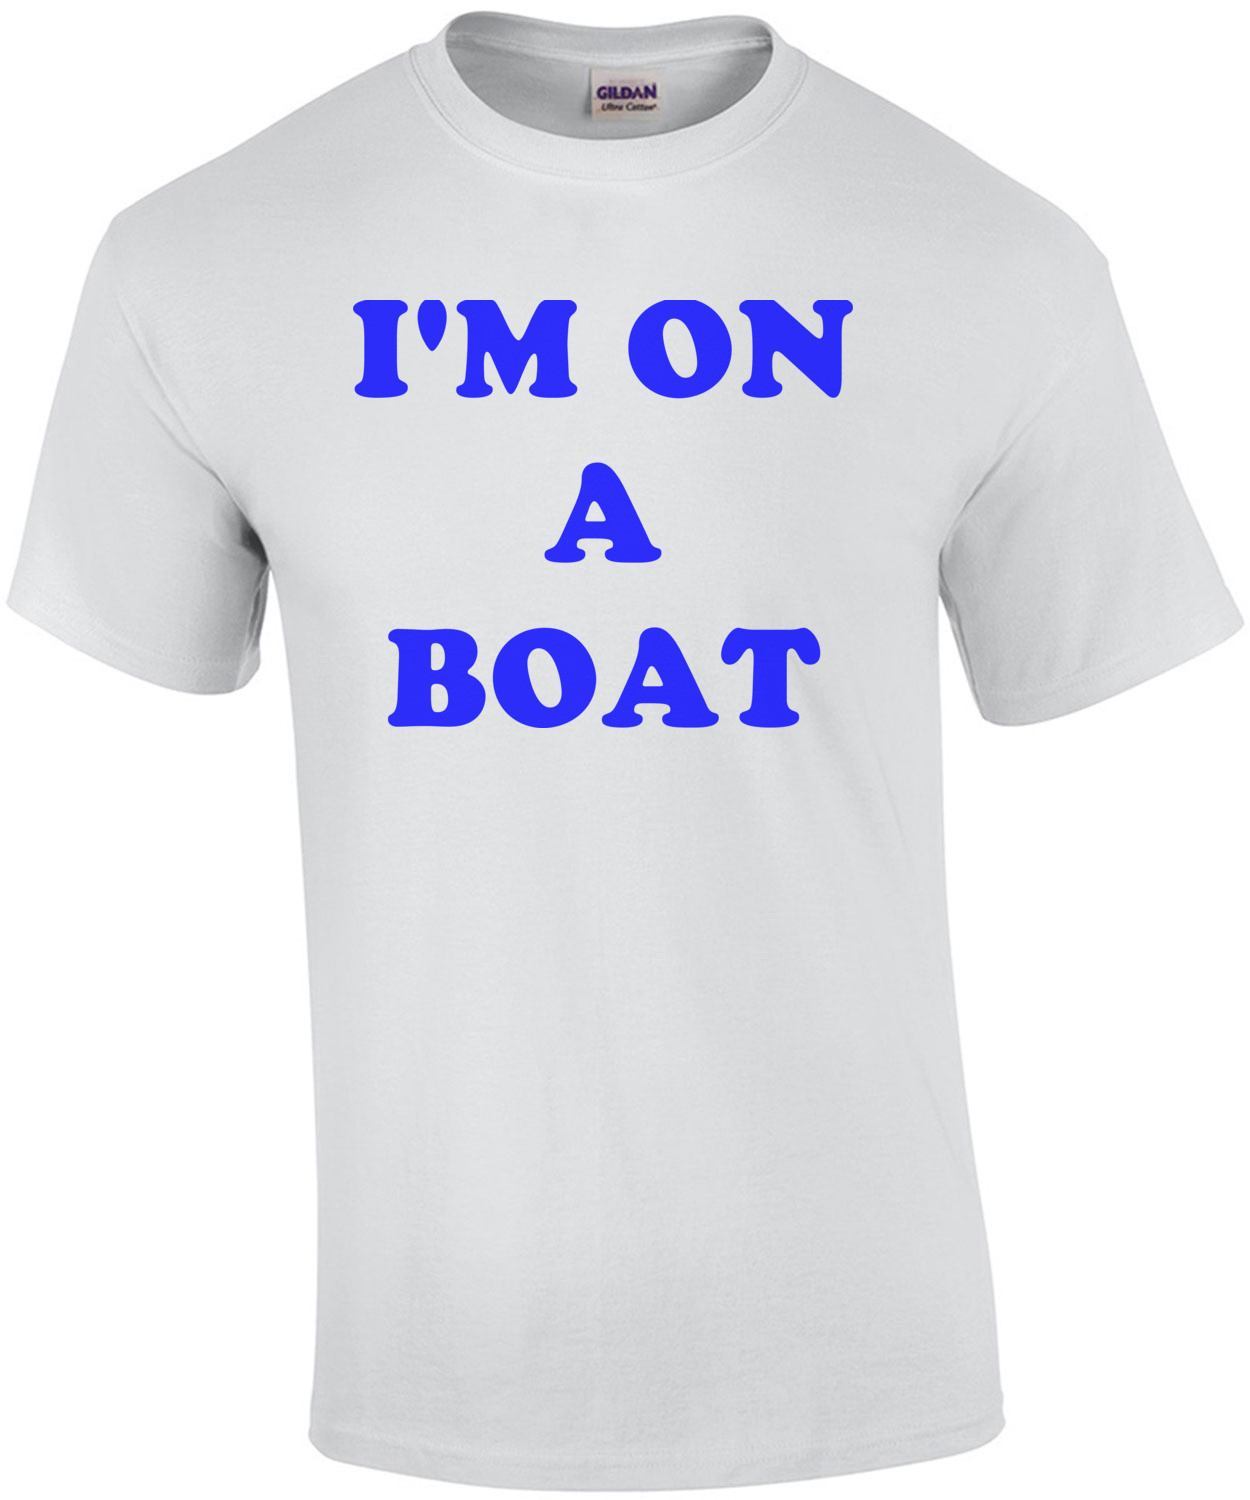 I'M ON A BOAT Shirt